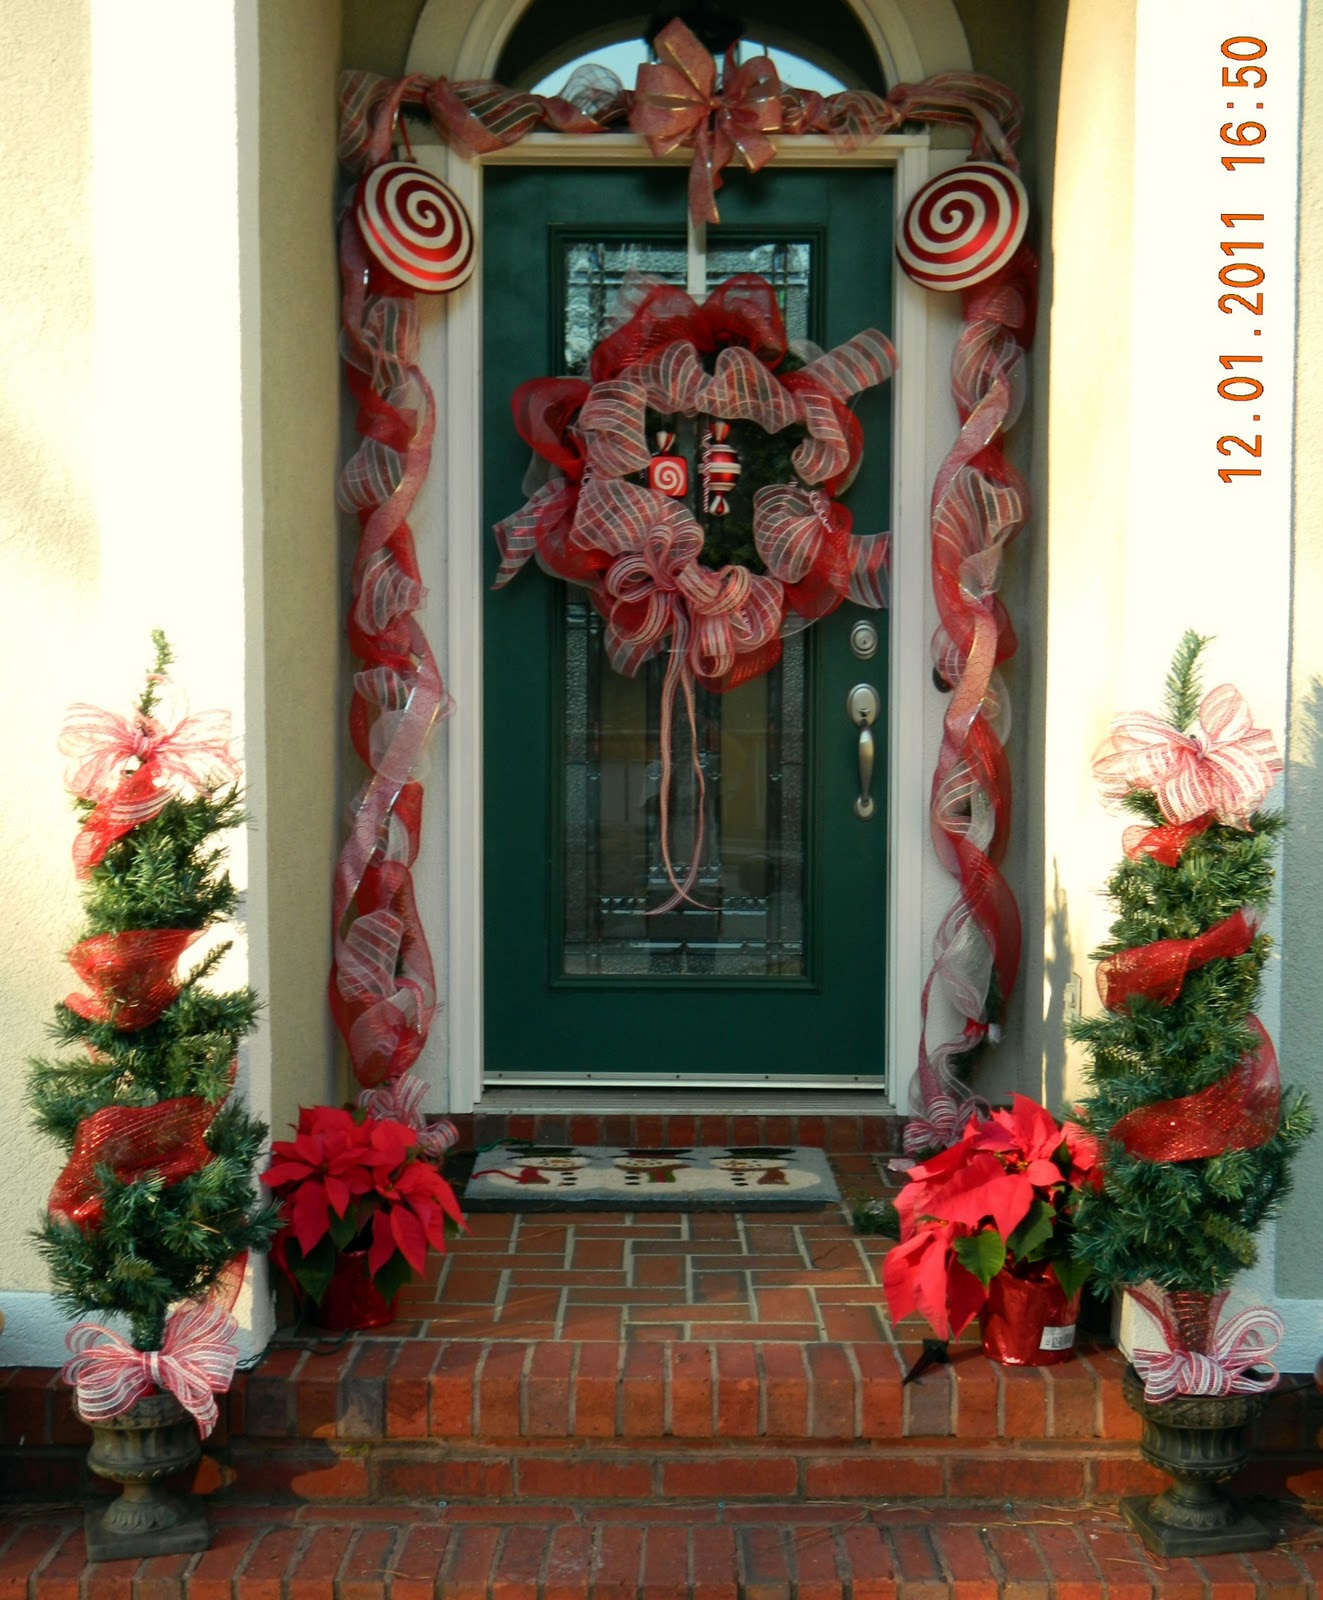 A real crazy life for Door xmas decoration ideas